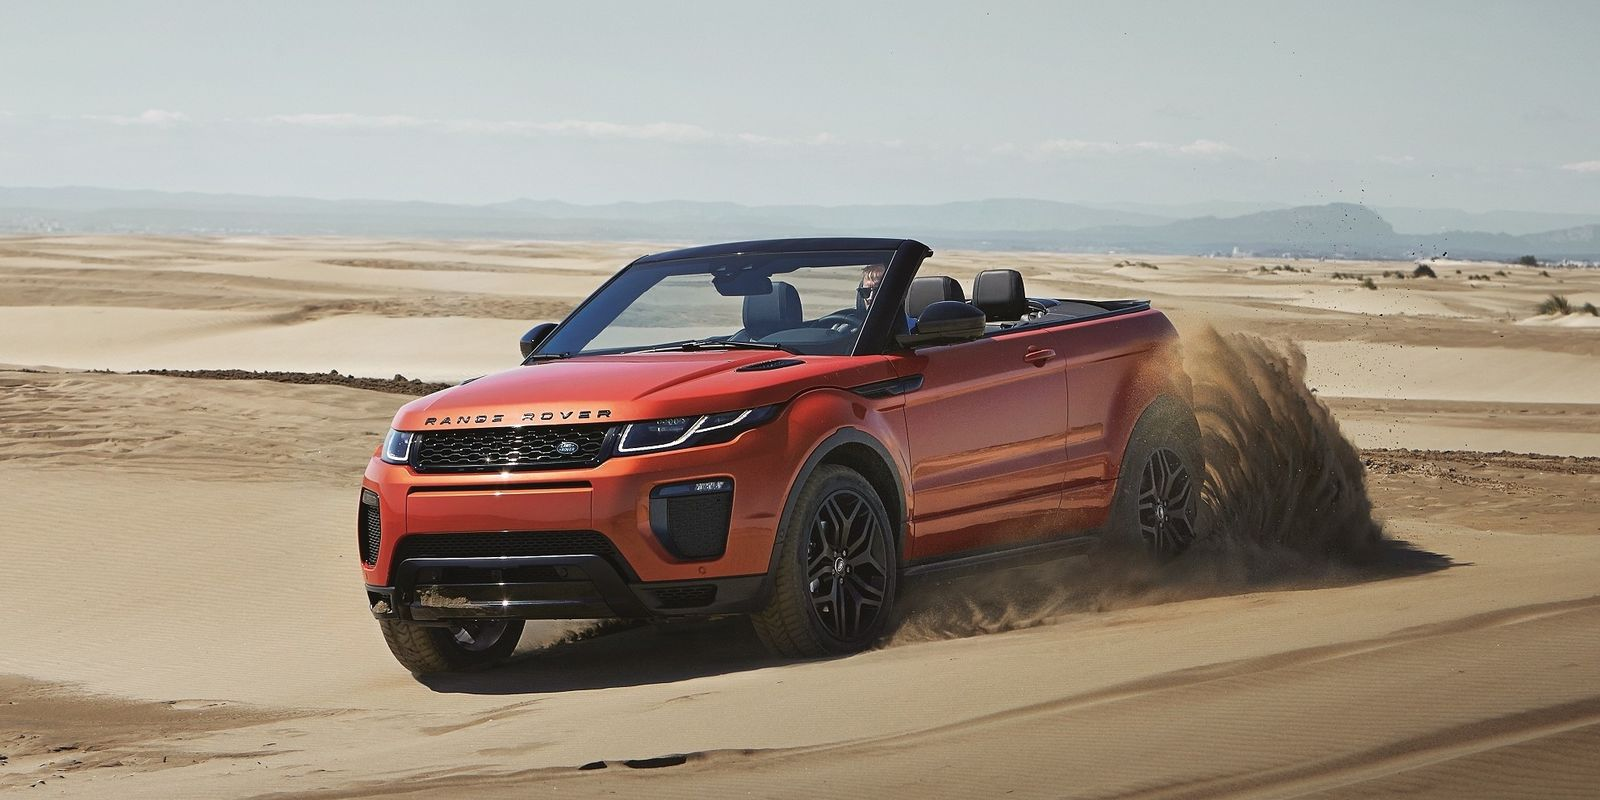 land rover range rover evoque convertible review deals carwow. Black Bedroom Furniture Sets. Home Design Ideas